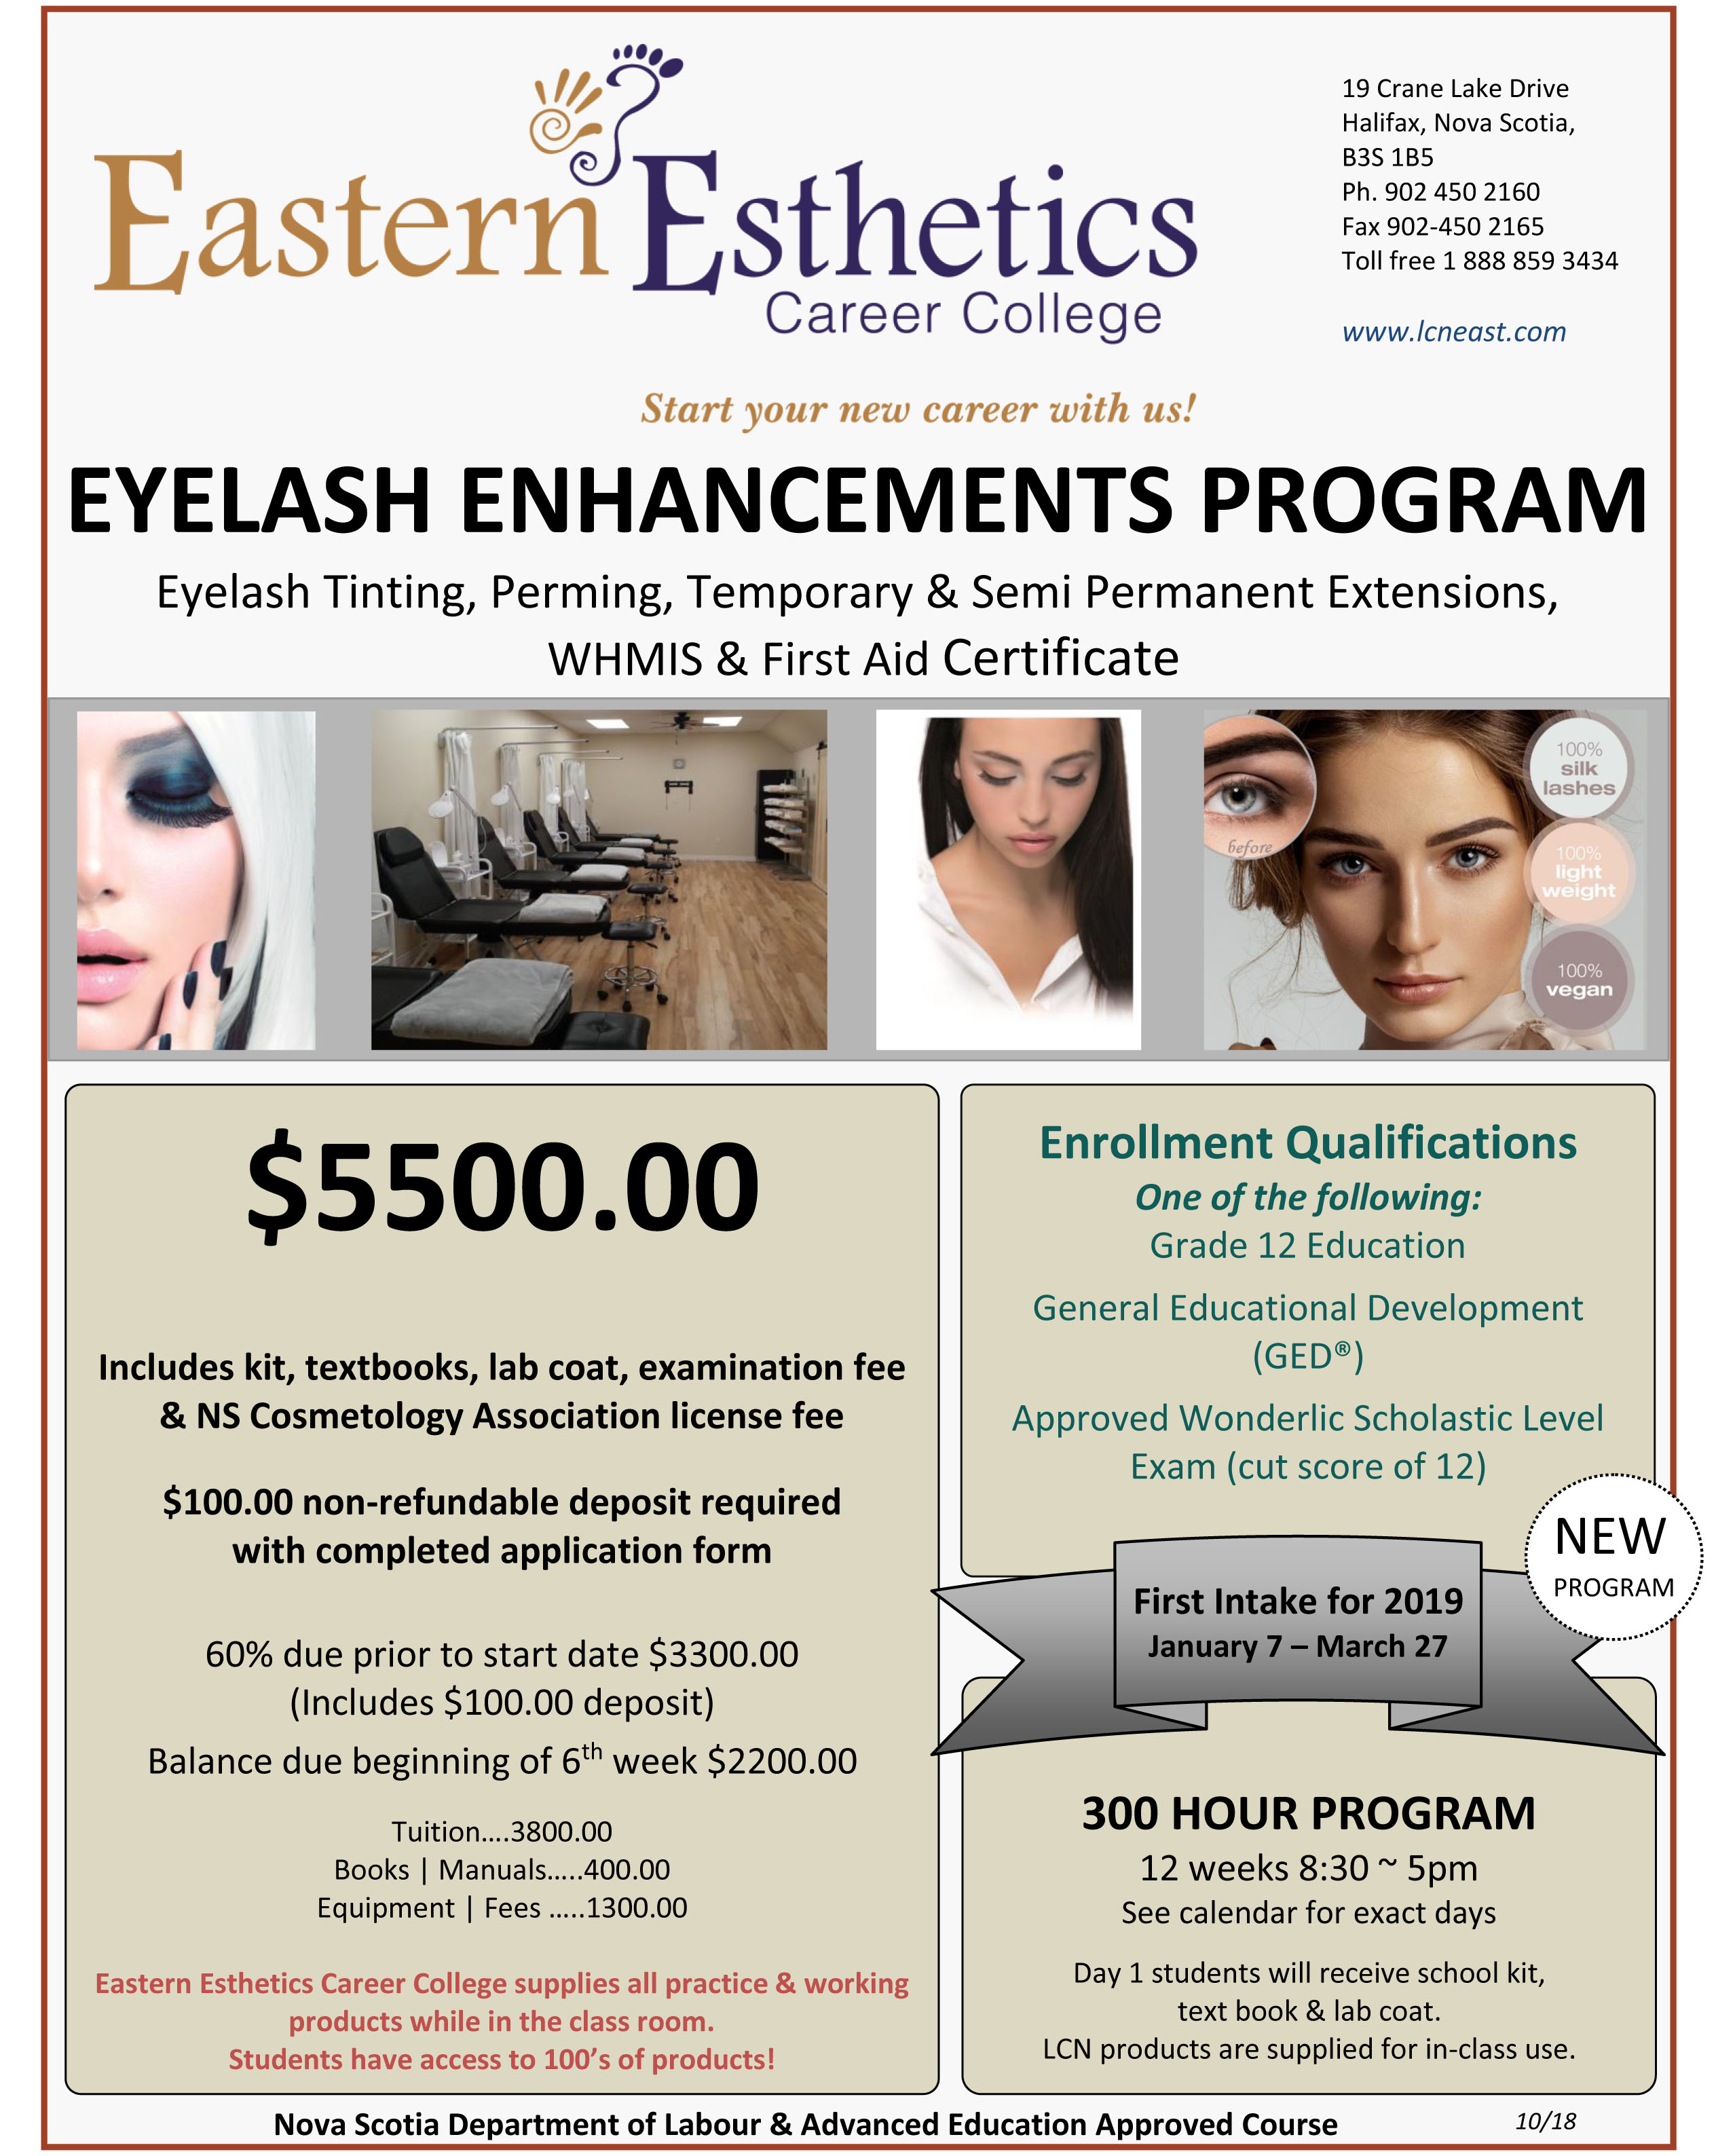 2018 EECC flyer Eyelash Enhancements program october